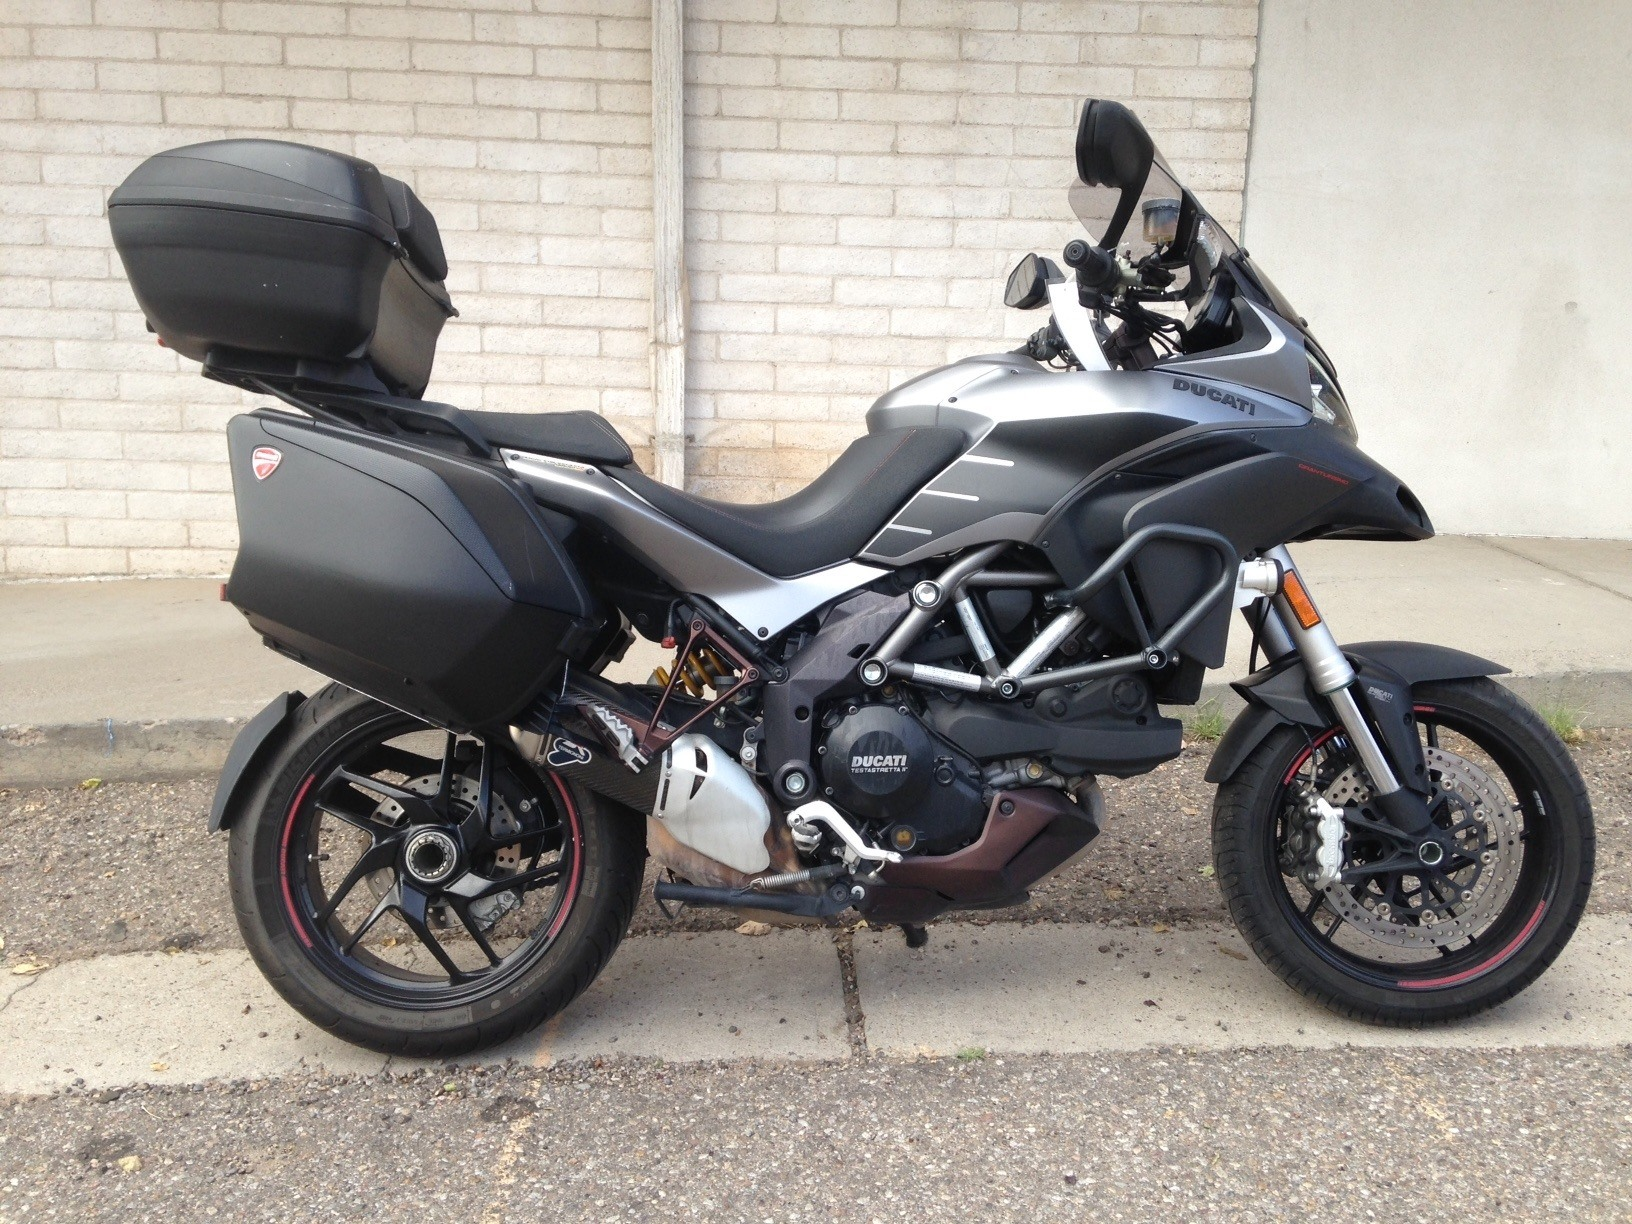 2013 Ducati Multistrada 1200 S Touring in Albuquerque, New Mexico